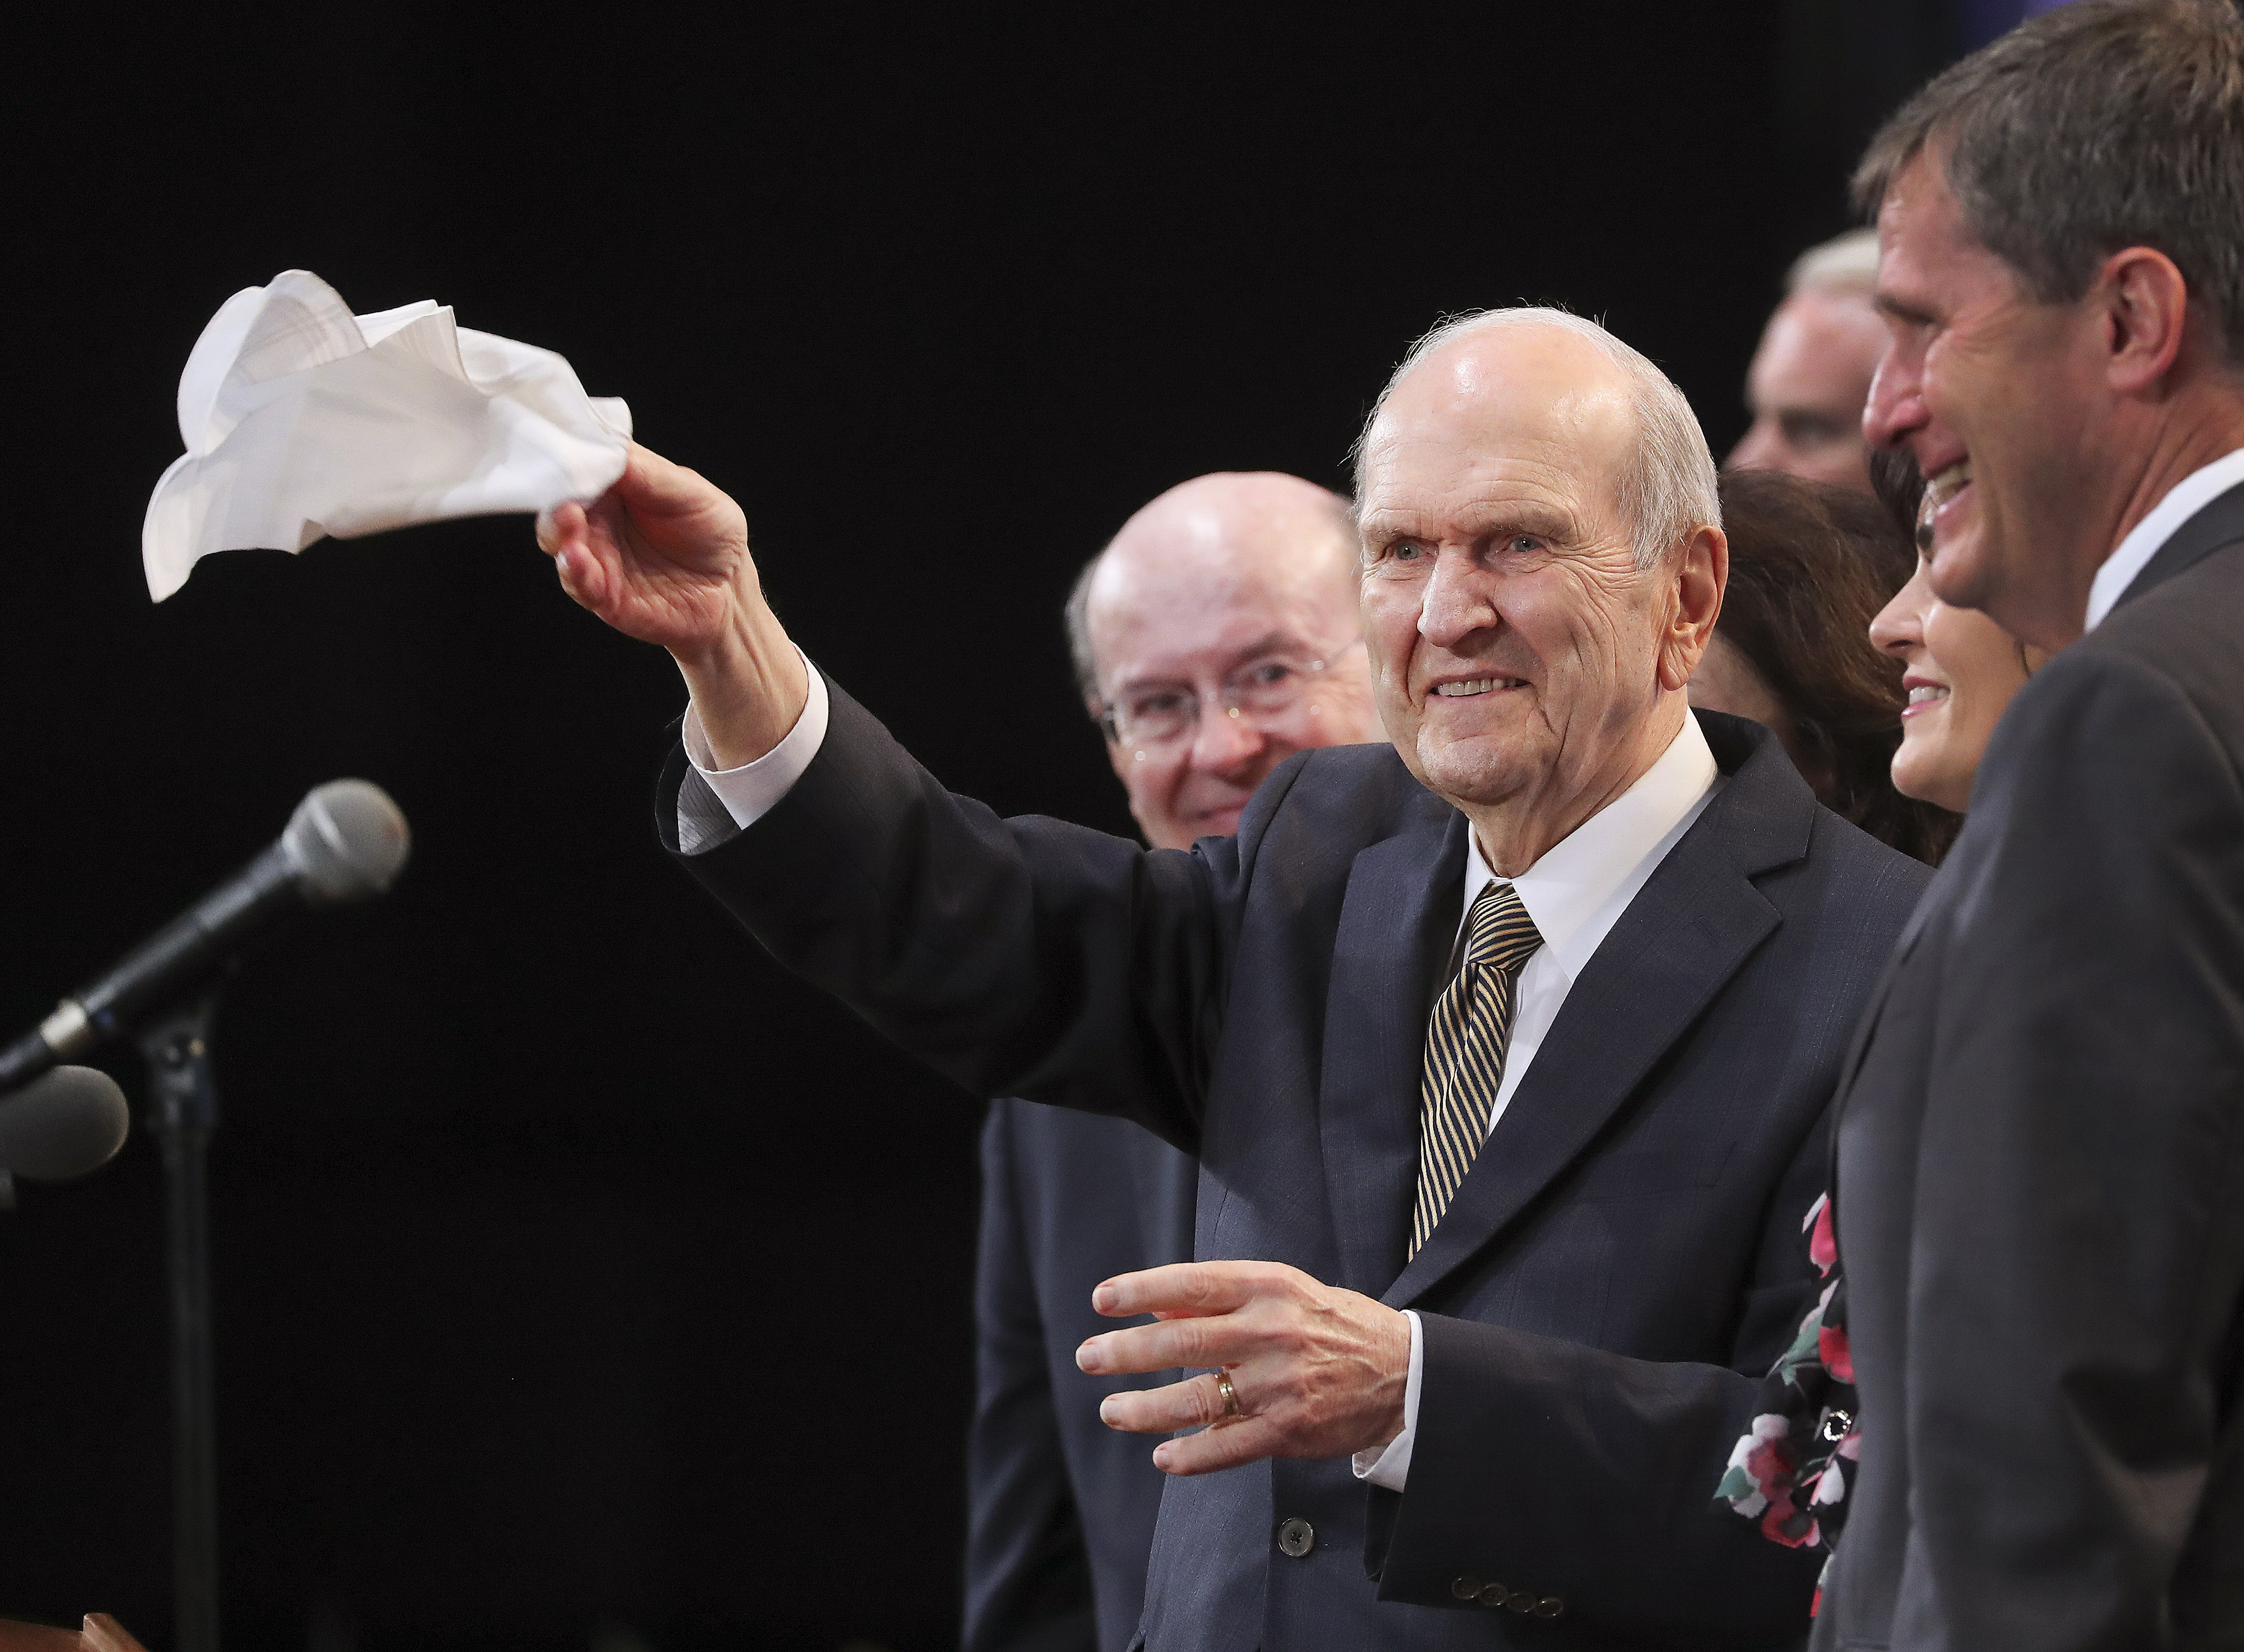 President Russell M. Nelson of The Church of Jesus Christ of Latter-day Saints waves to attendees after a devotional in Sao Paulo, Brazil, on Sunday, Sept. 1, 2019.